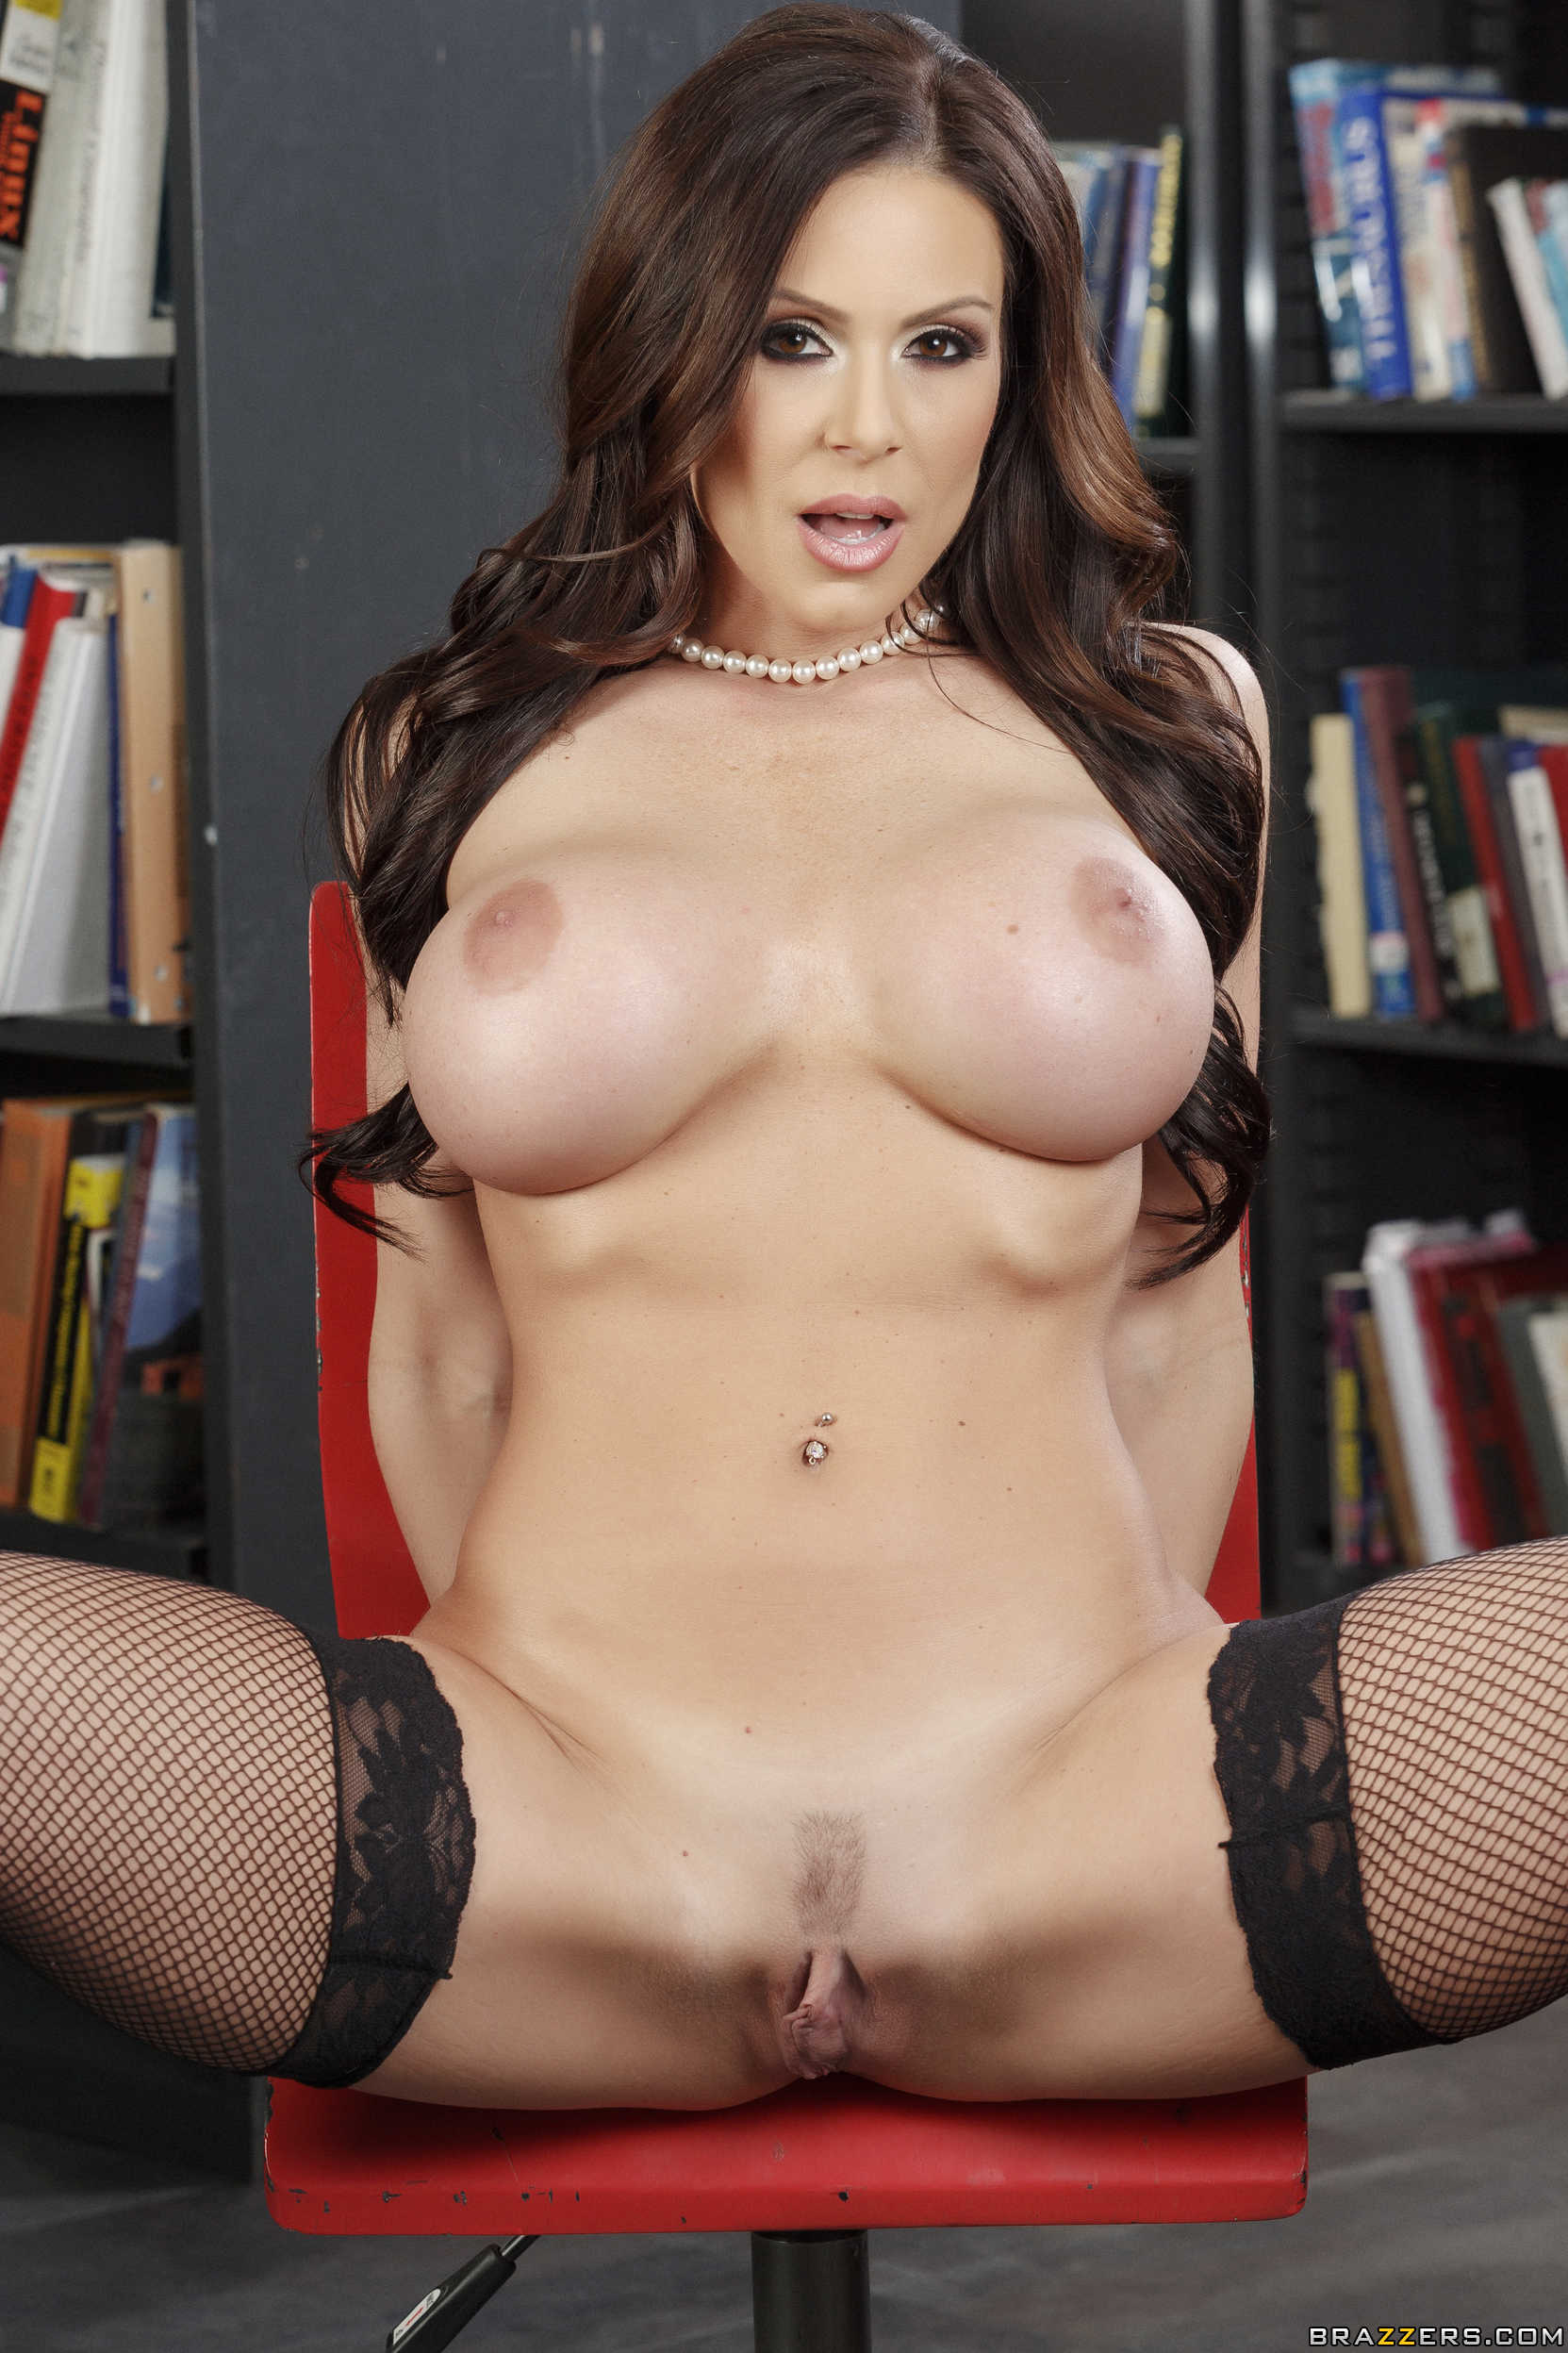 Brazzers milfs like it big milfs on vacation part 1 sce 3